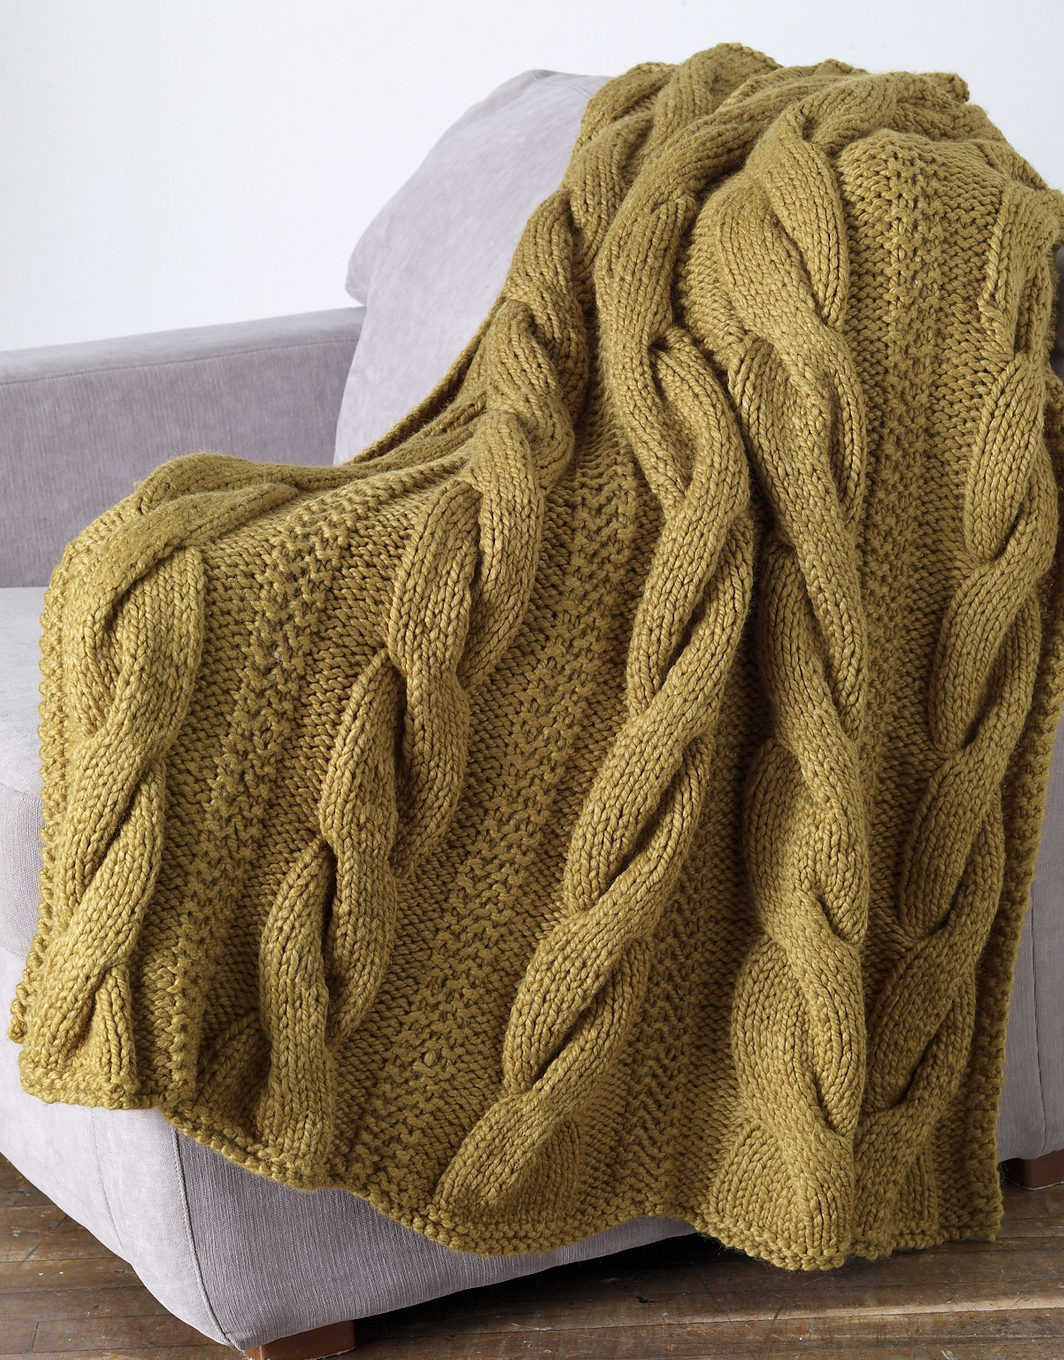 Knit Crochet Fresh Afghans In Sections Knitting Patterns Of New 49 Pictures Knit Crochet